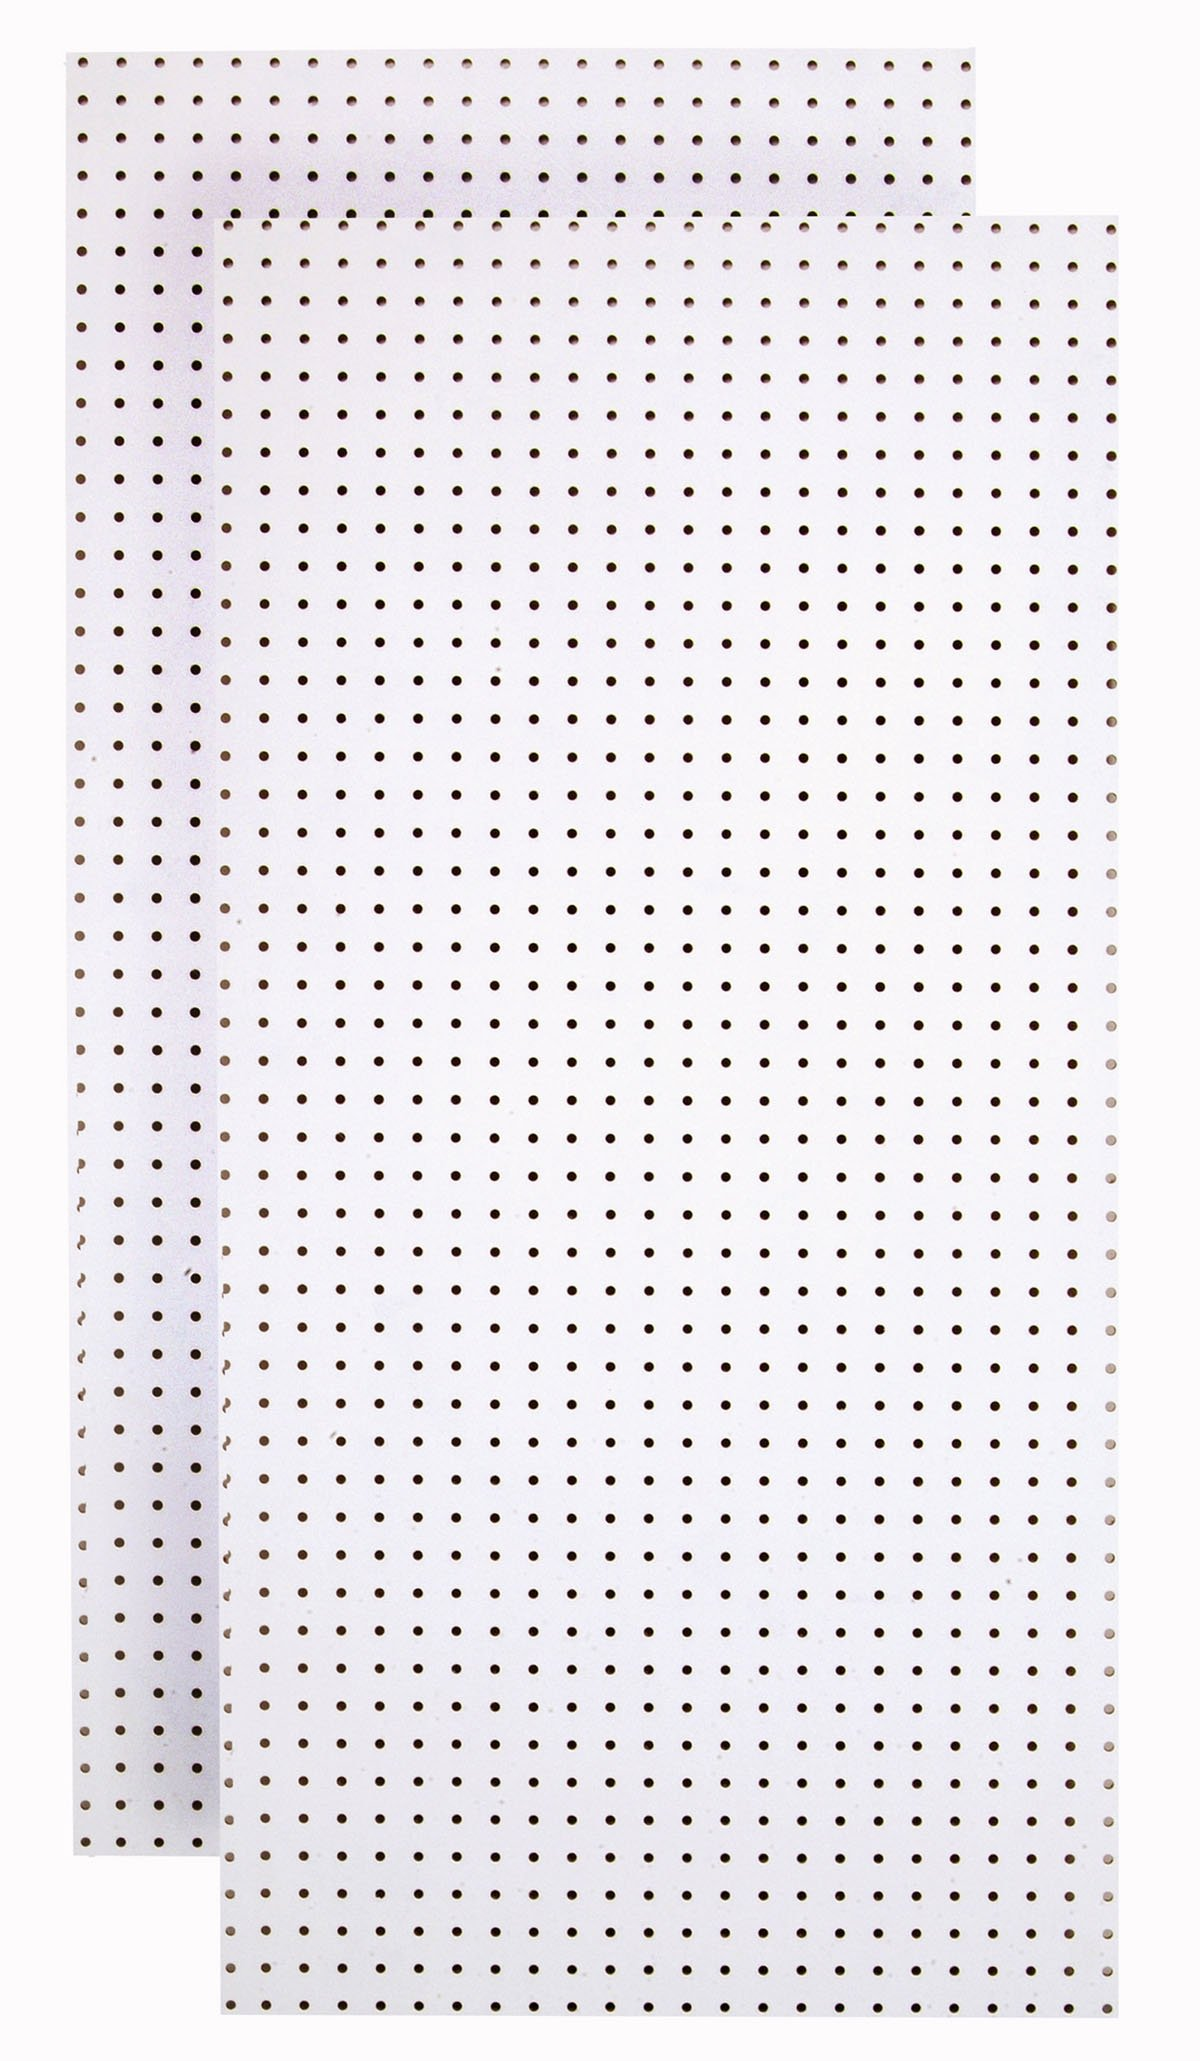 Tempered Wood Pegboard TPB-2WF 24-Inch W x 48-Inch H x 1/4-Inch D Custom Painted Heavy Duty Round Hole Pegboards, Blissful White